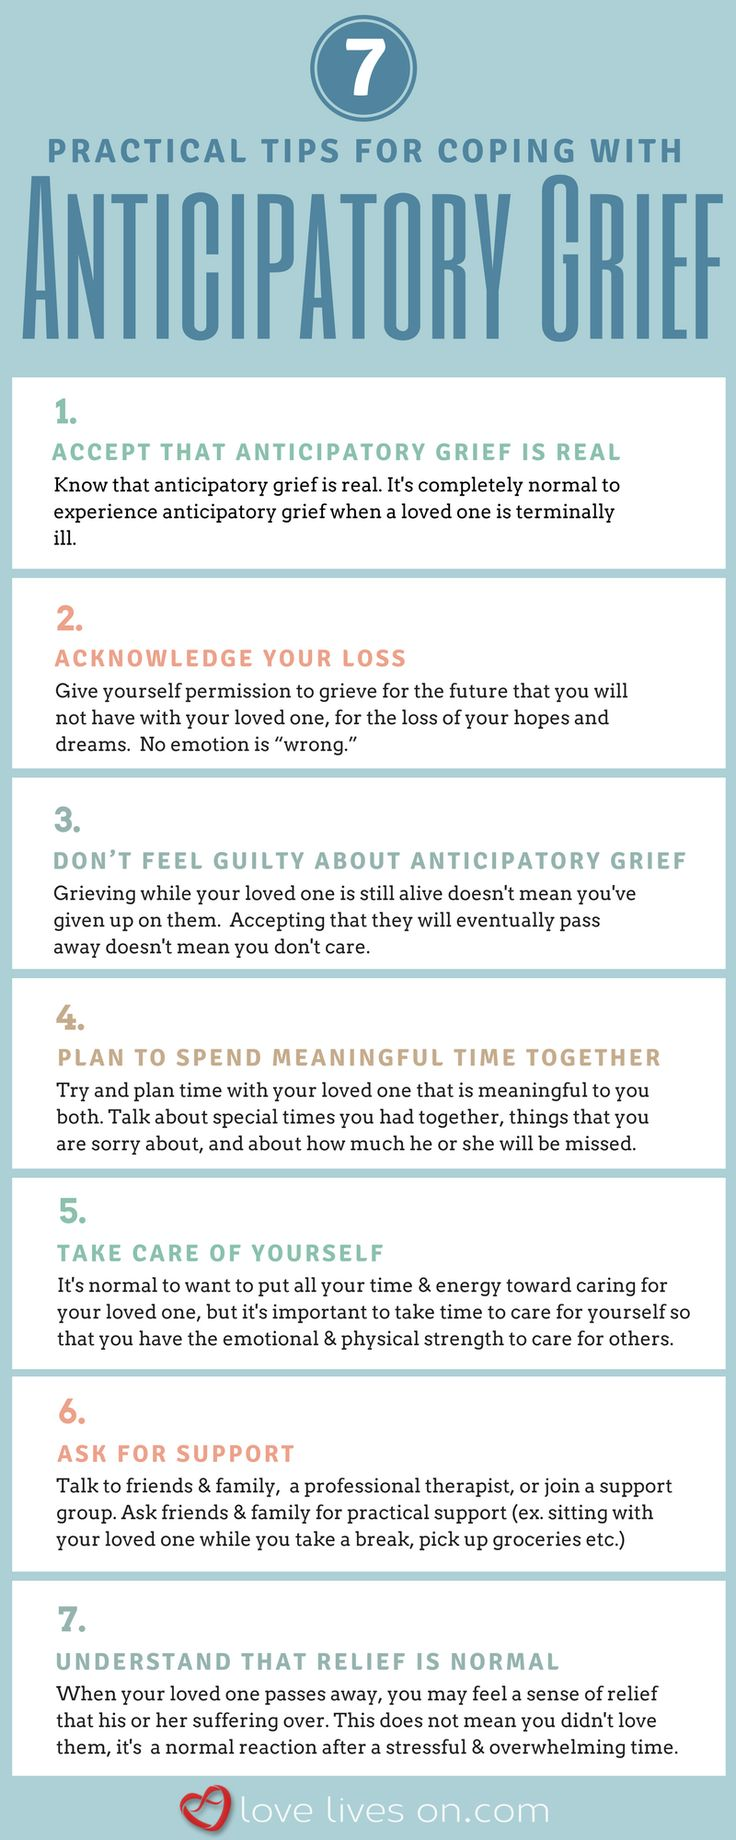 Watch How To Cope With Anticipatory Grief